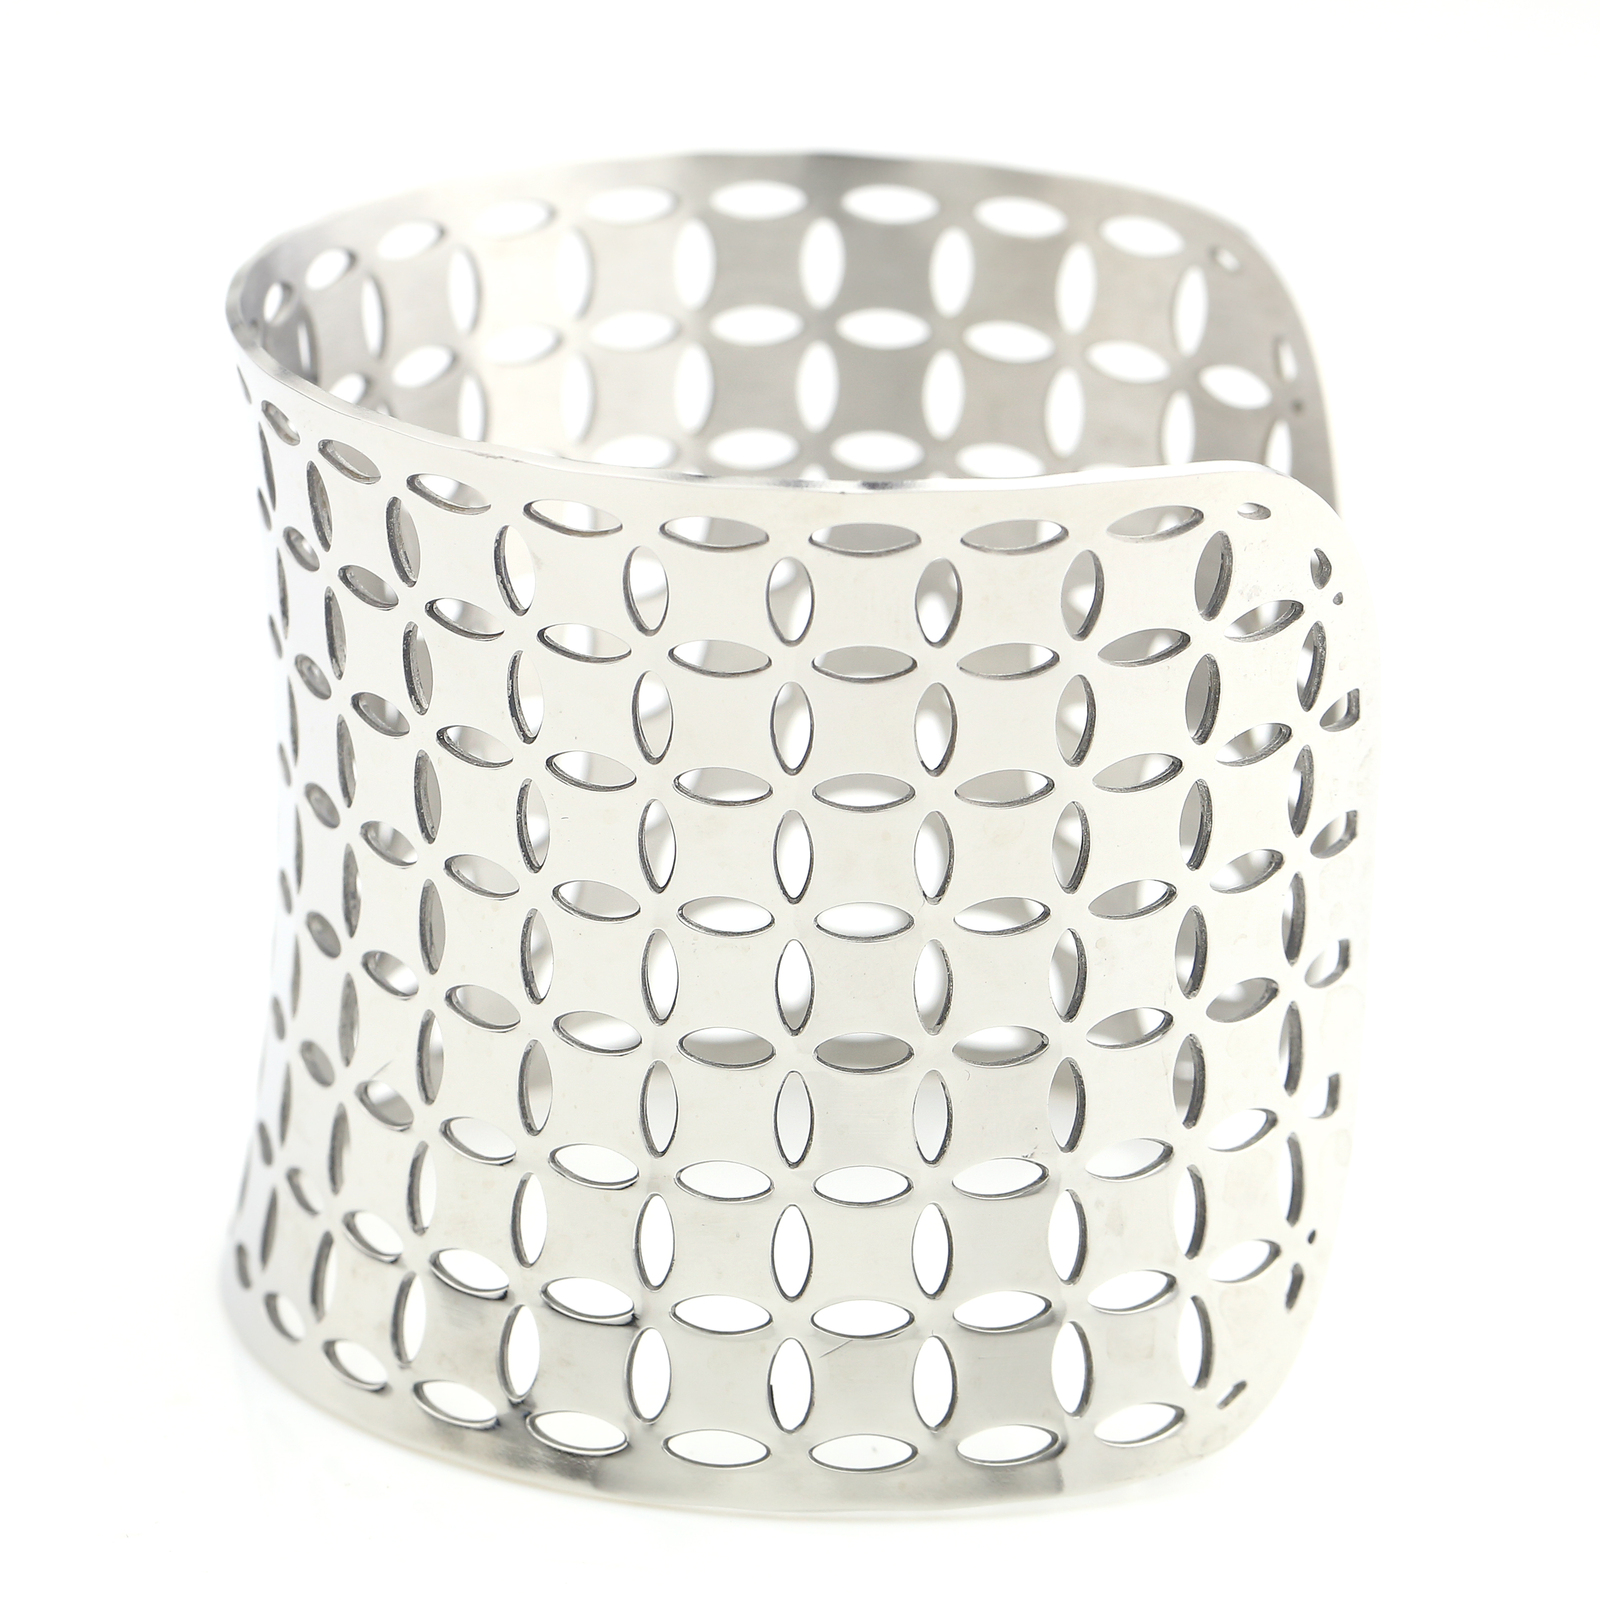 UNITED ELEGANCE Edgy Silver Tone Cuff Bracelet With Contemporary Cut Out Design